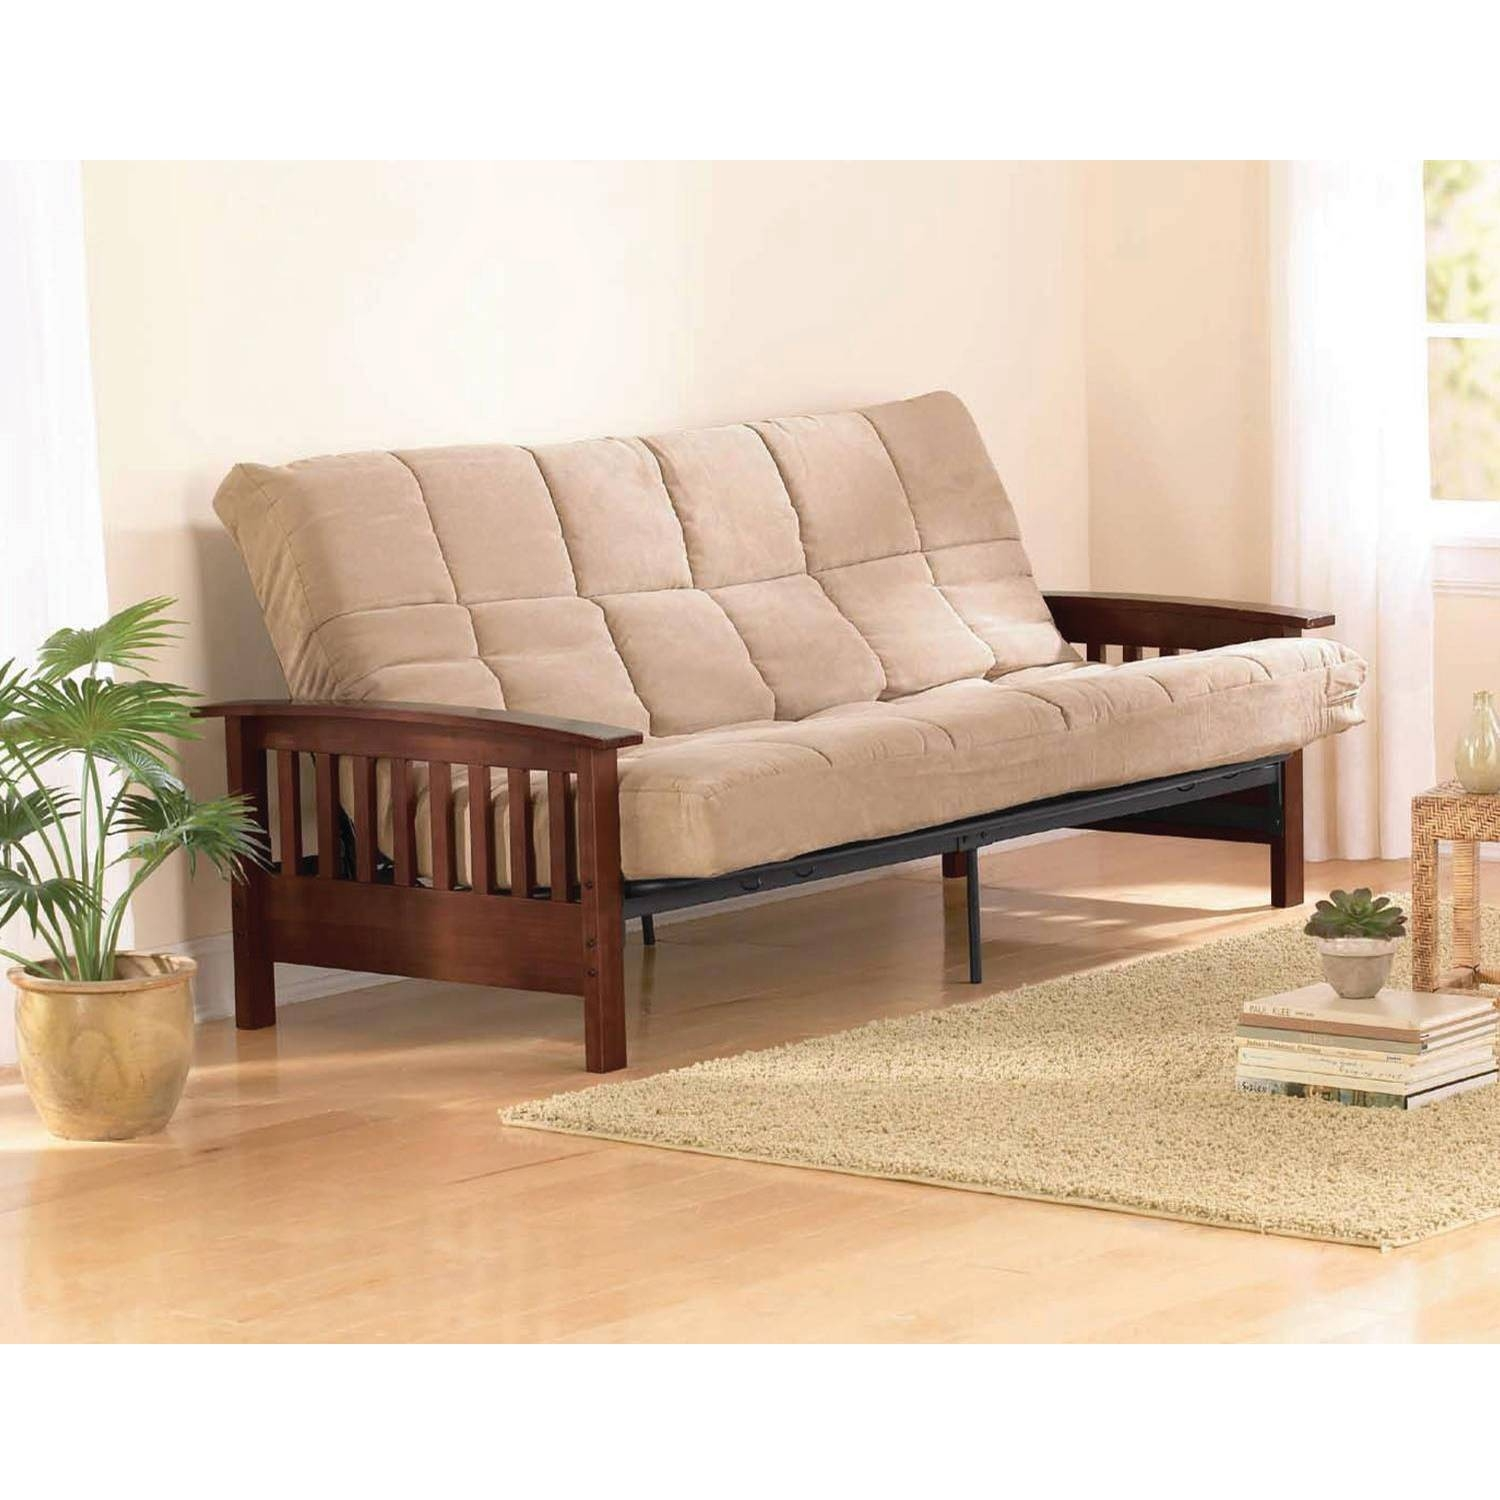 Furniture: Leather Futon Walmart With Modern Look And Stylish for Big Lots Sofa Bed (Image 14 of 30)